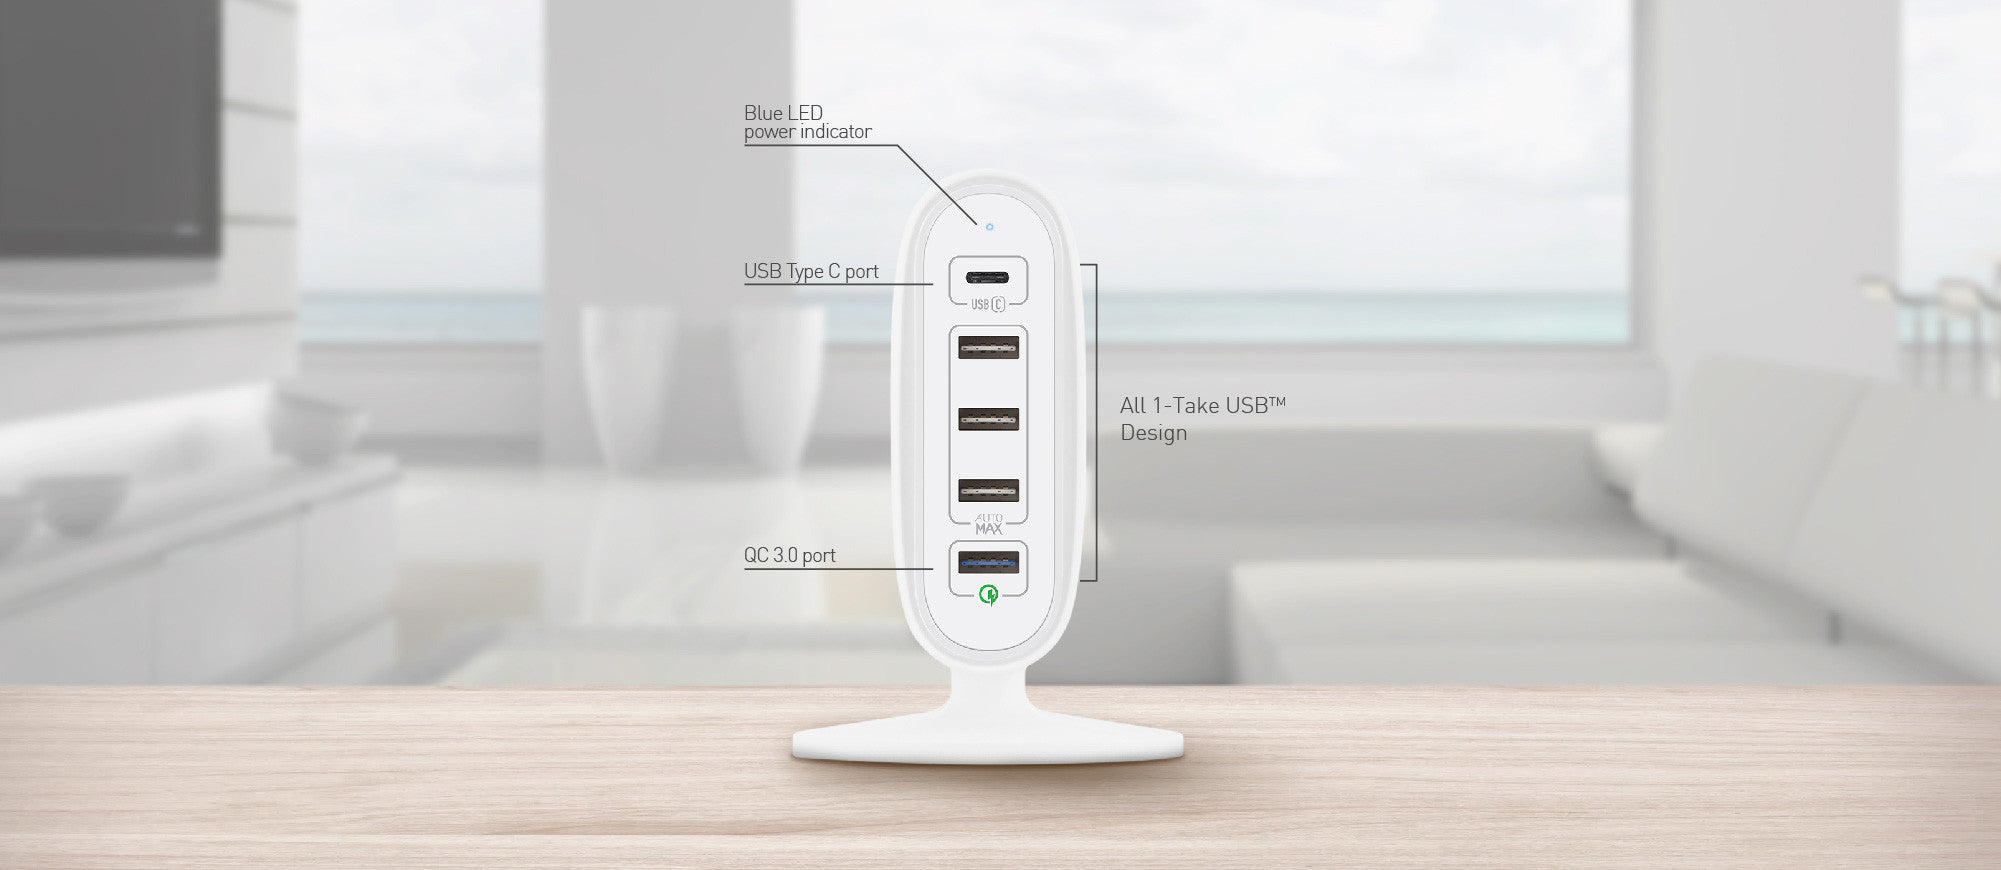 MOMAX U.Bull 5-USB Charging Station AutoMax Ultra Fast Type-C + QC 3.0 Charger for Smartphone & Tablet